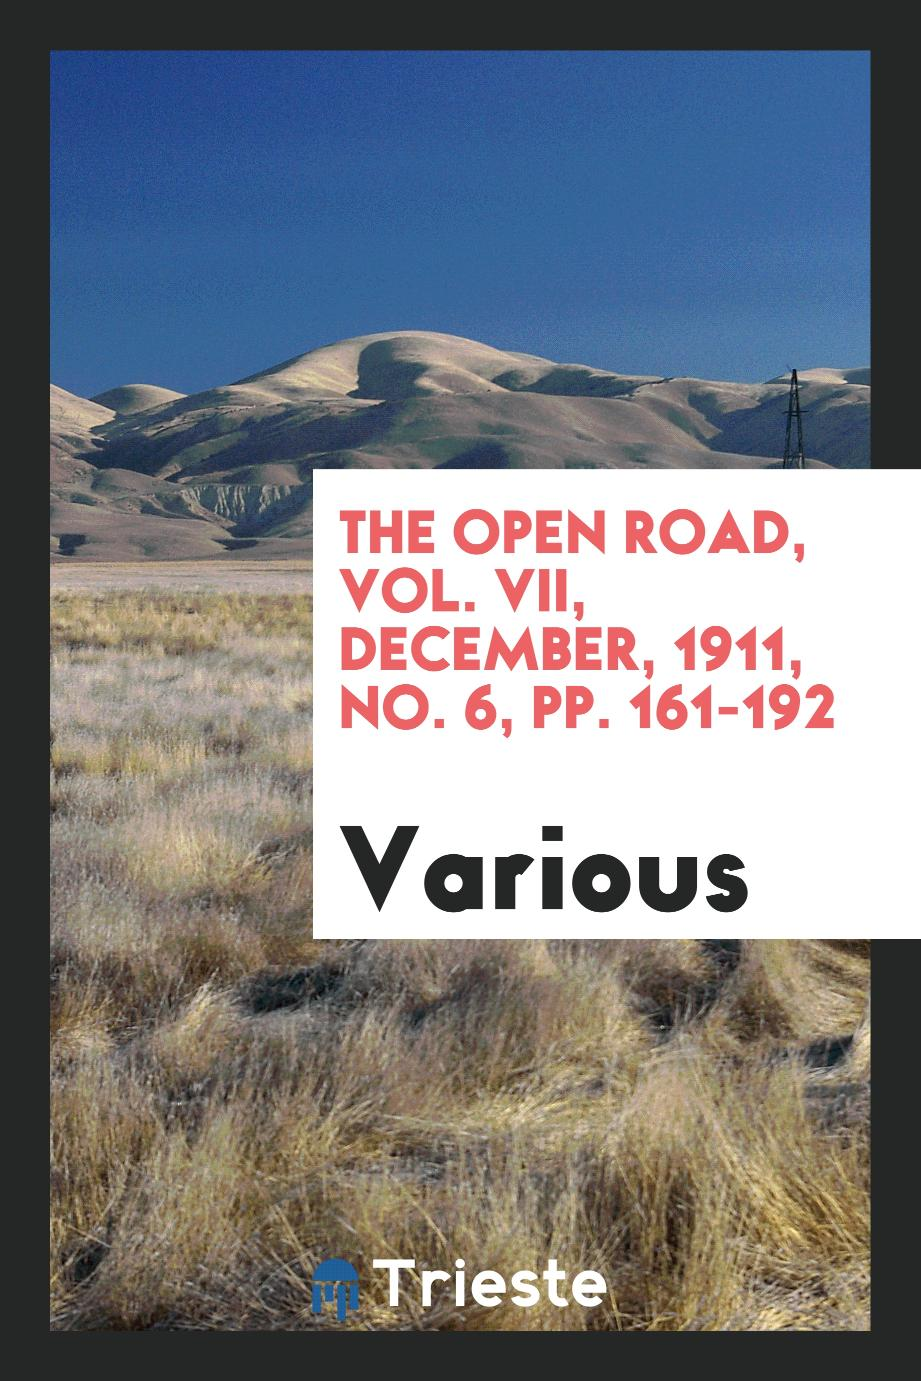 The Open Road, Vol. VII, December, 1911, No. 6, pp. 161-192